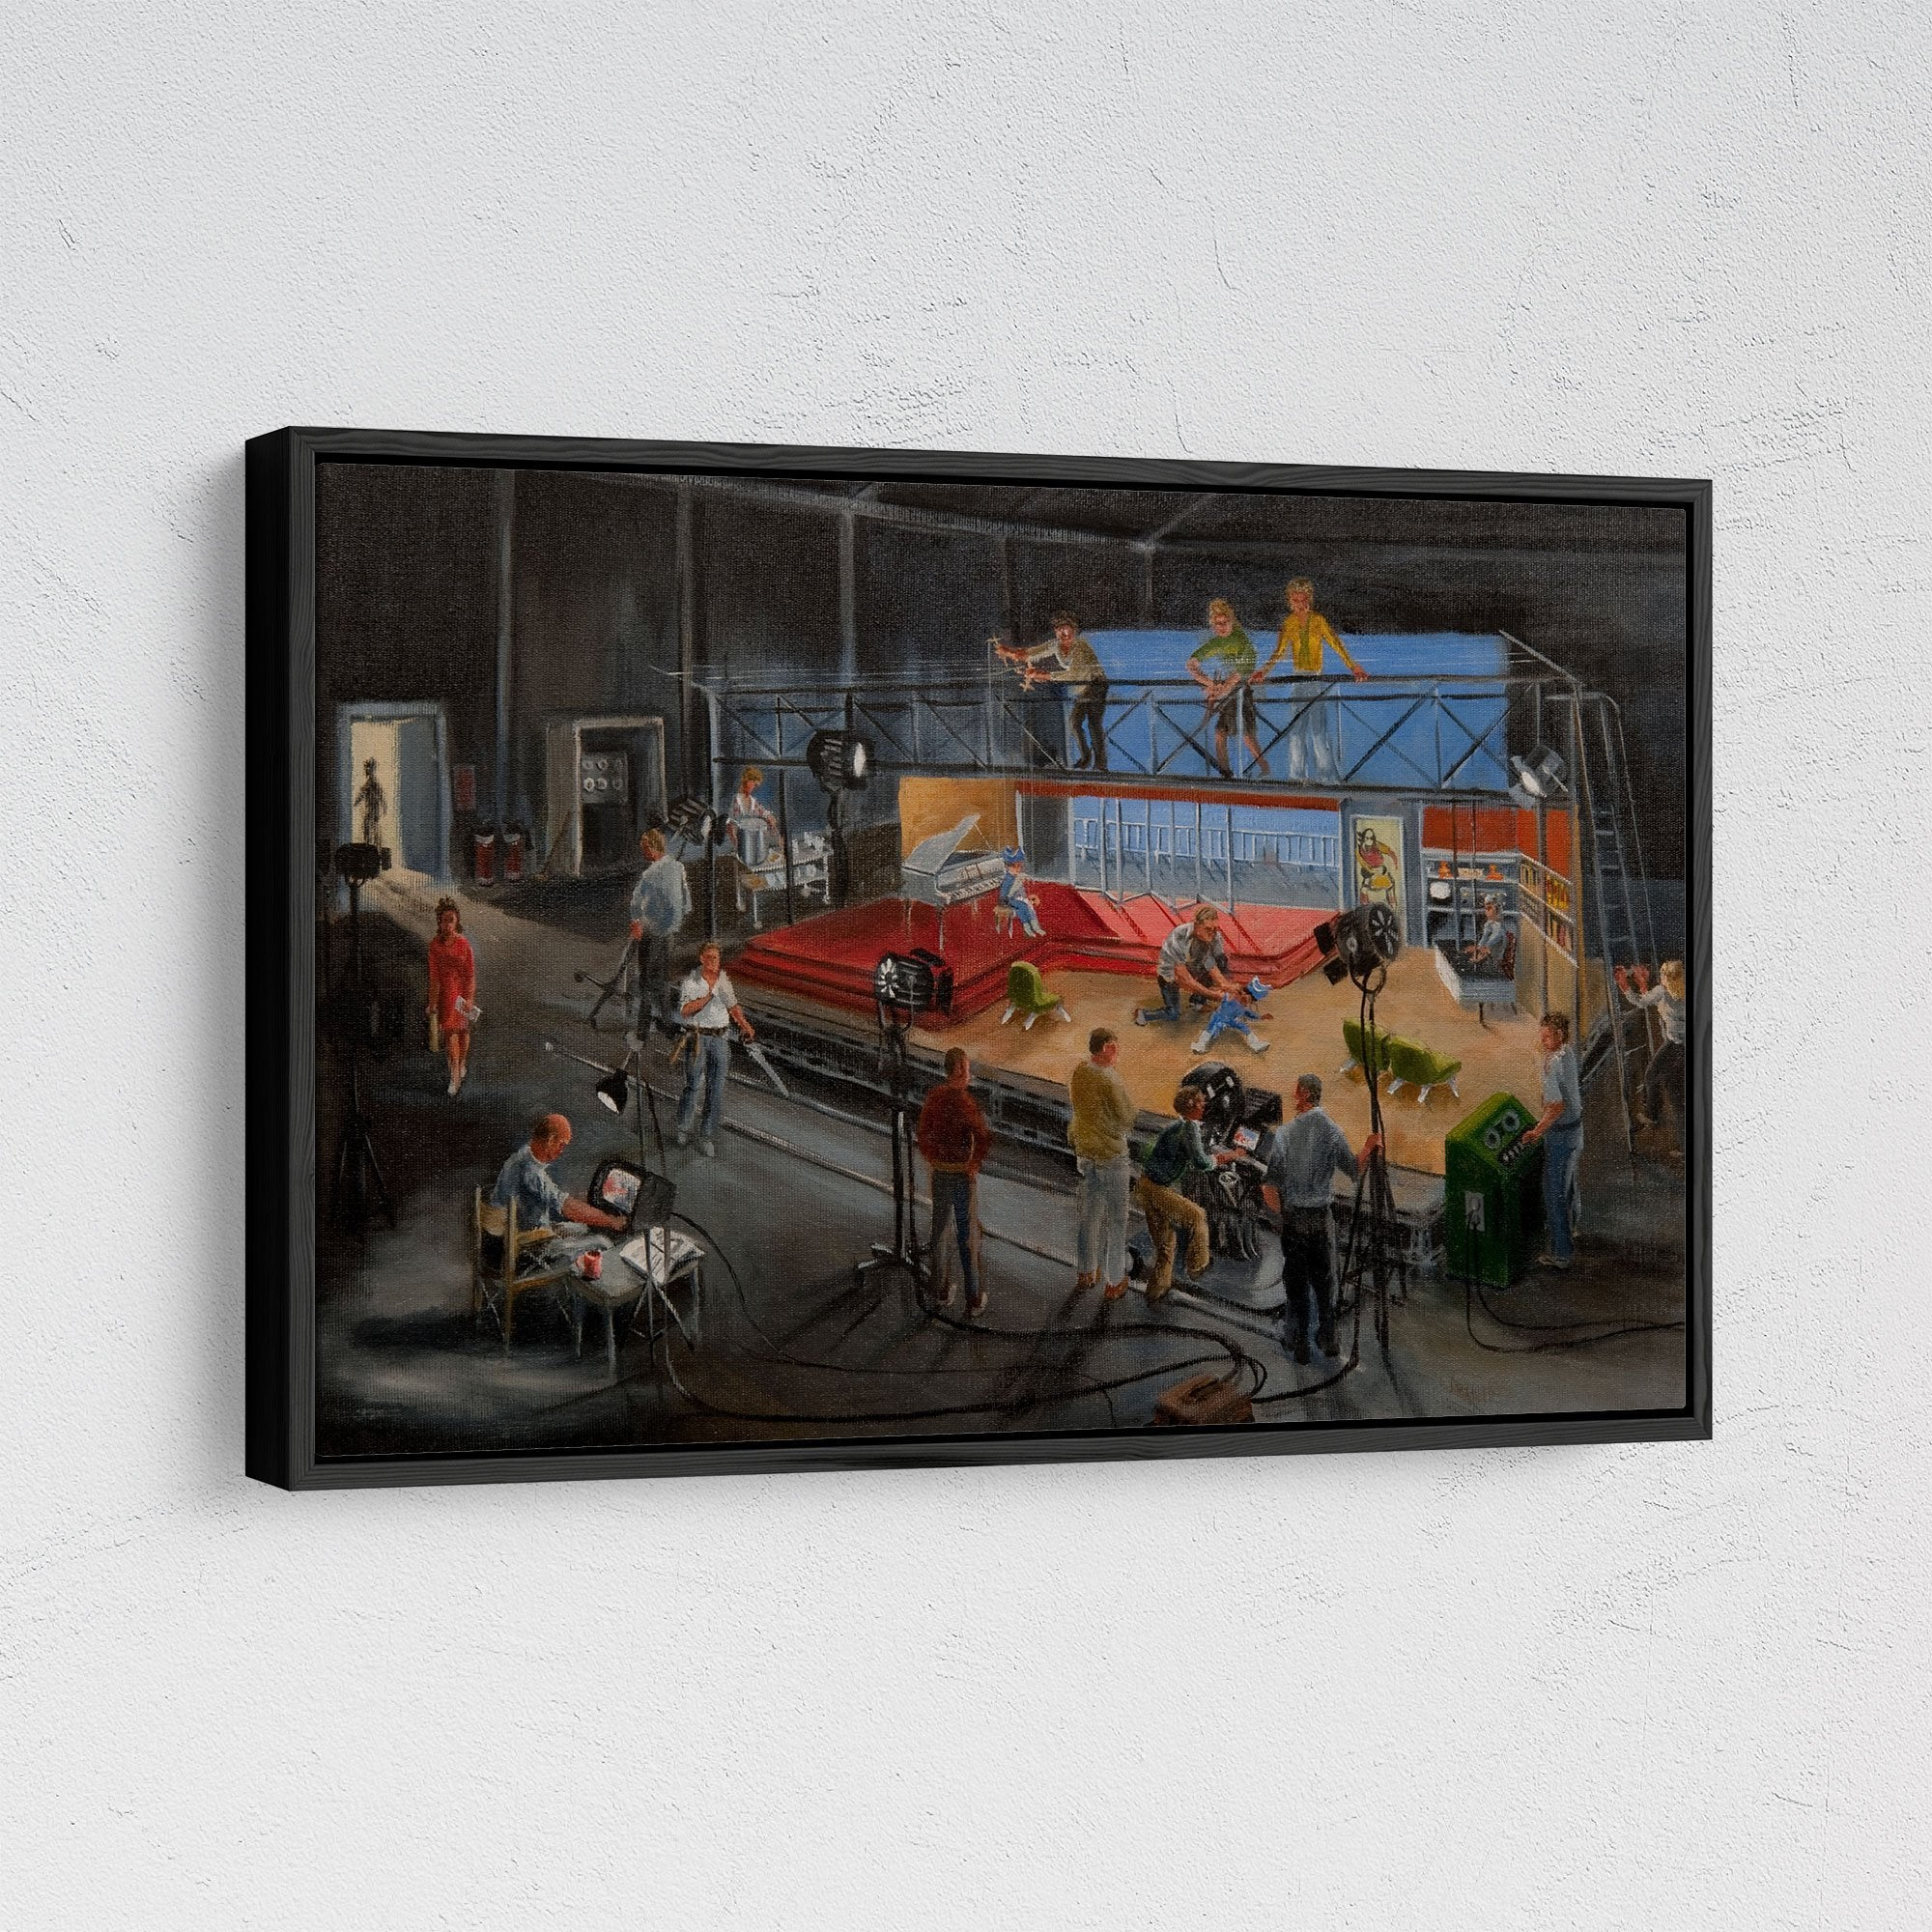 Century 21 Bob Bell Framed Painting Printed on Canvas [Exclusive] - The Gerry Anderson Store